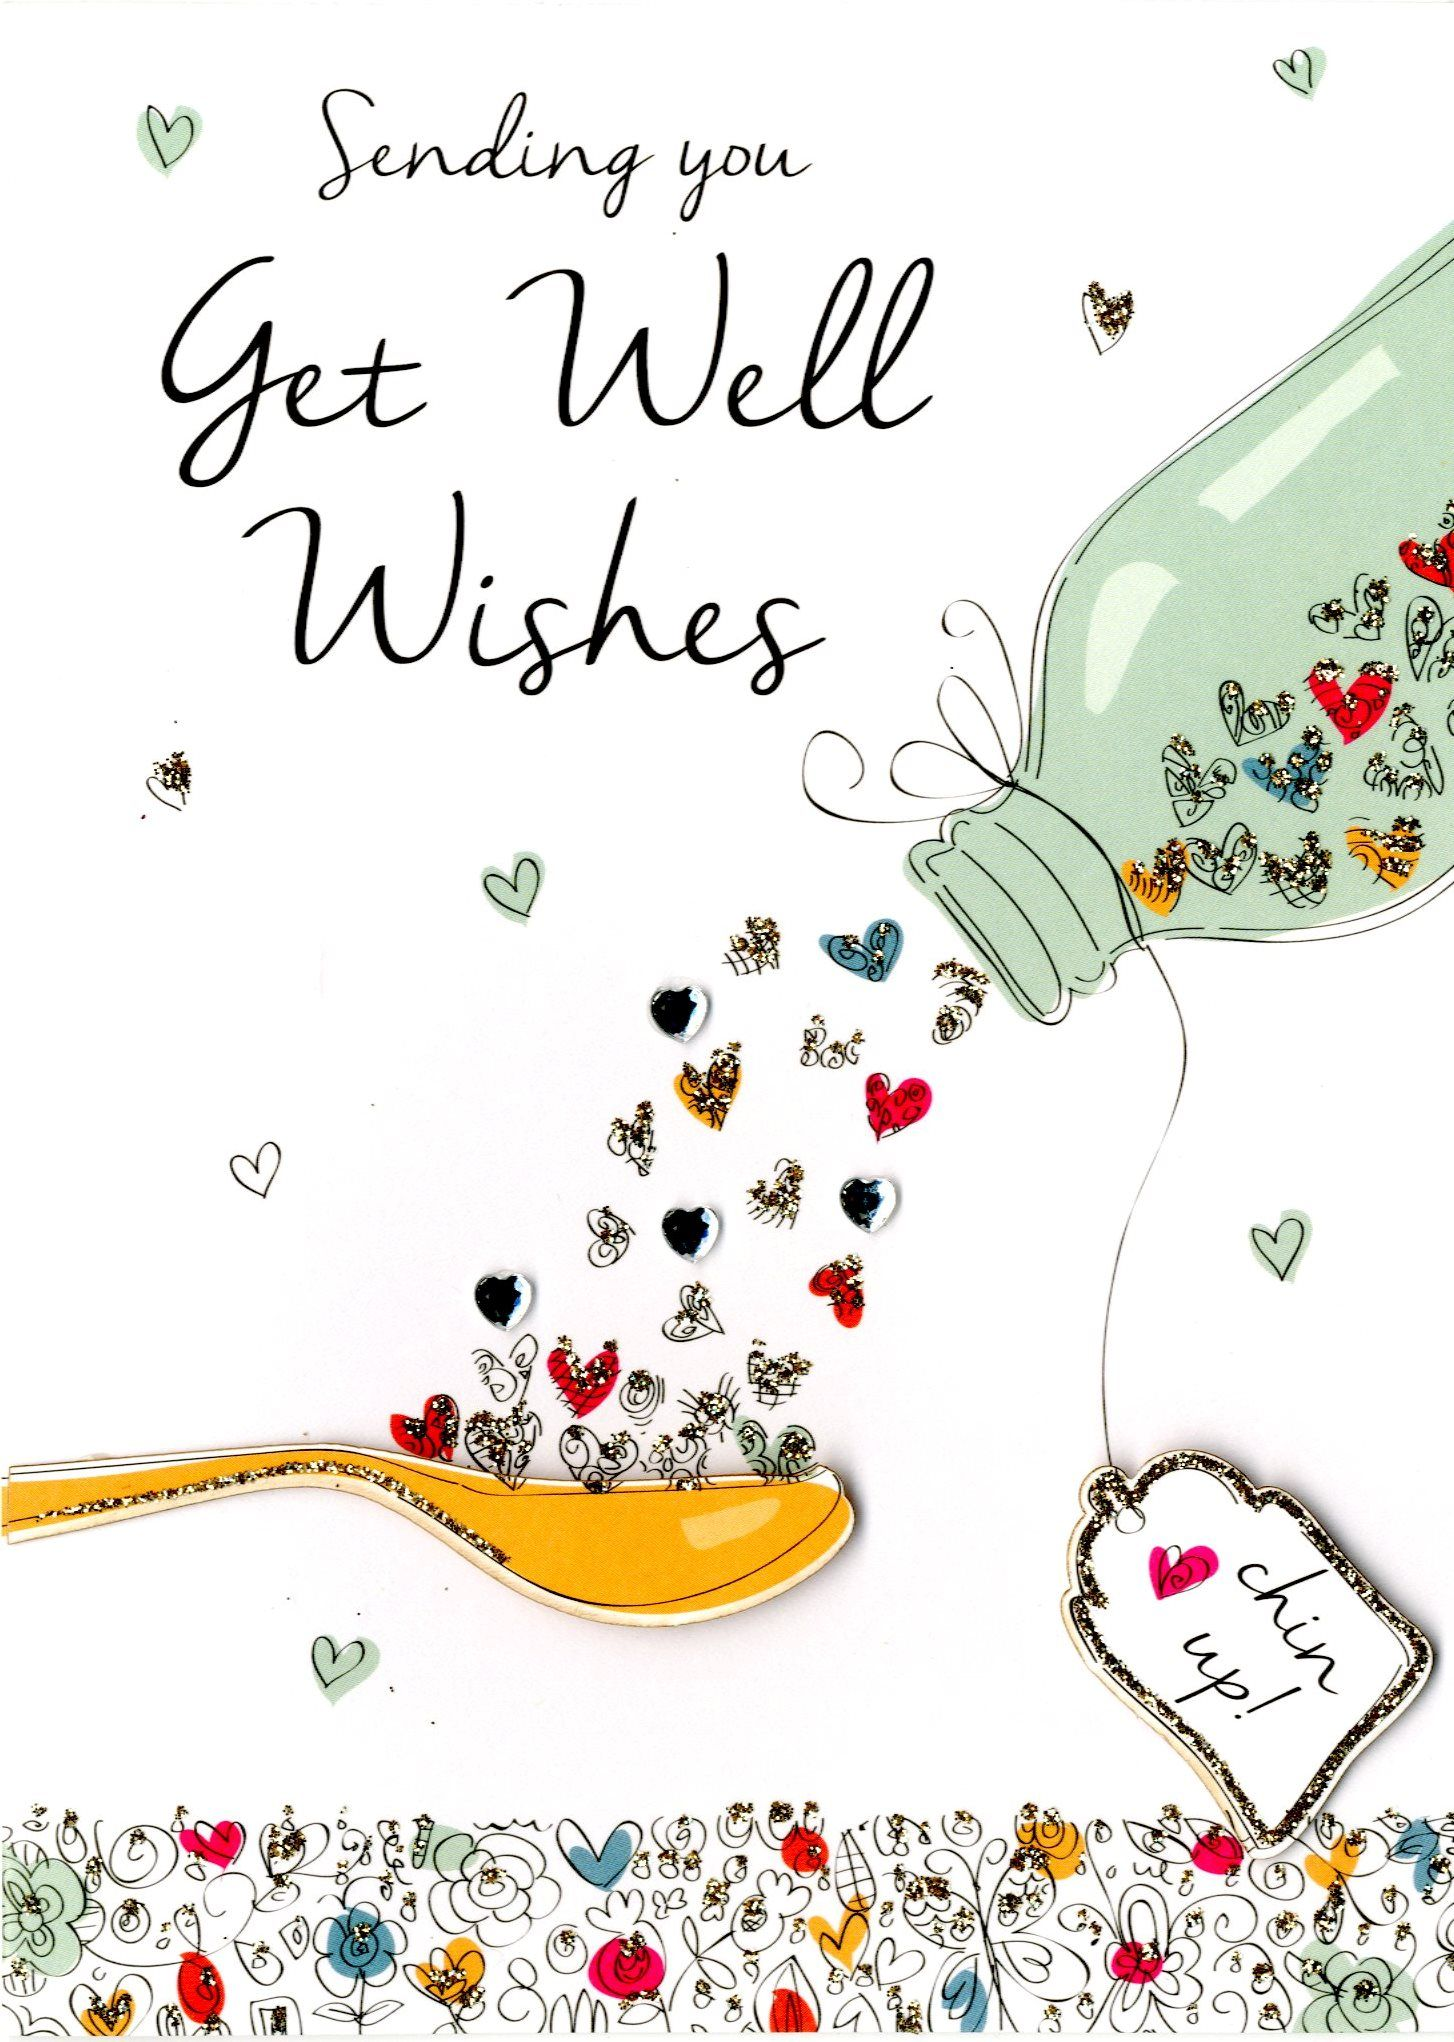 Get Well Wishes Greeting Card Card Card Cards And Feel Better